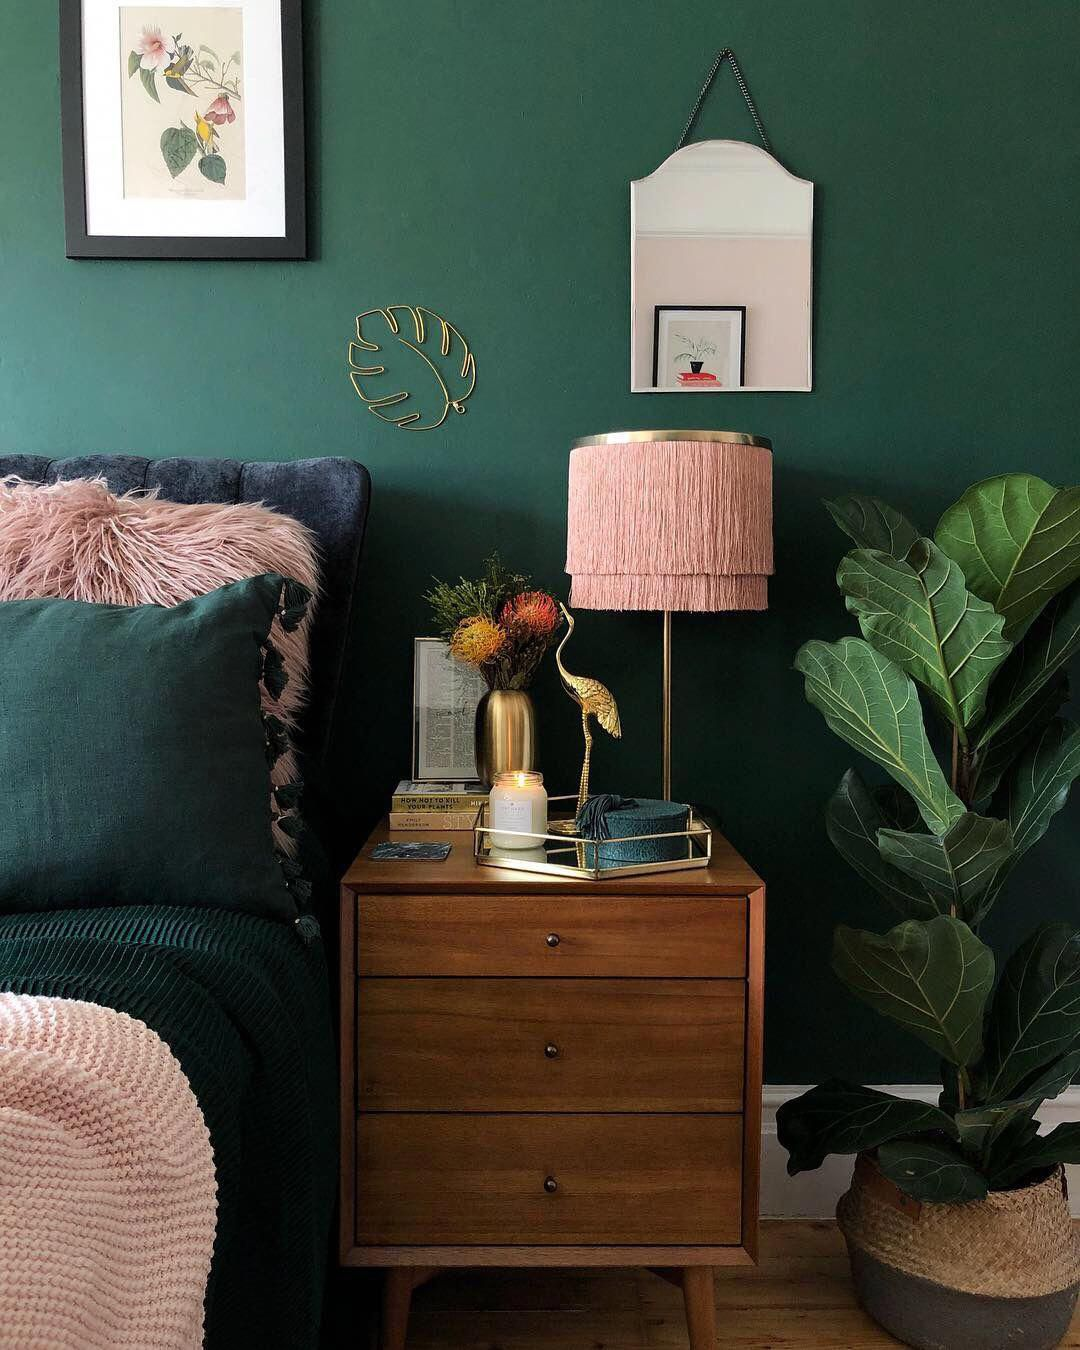 Outrageous Green And Brown Bedroom: Dark Green And Blush Pink Decor In Bedroom With Mid